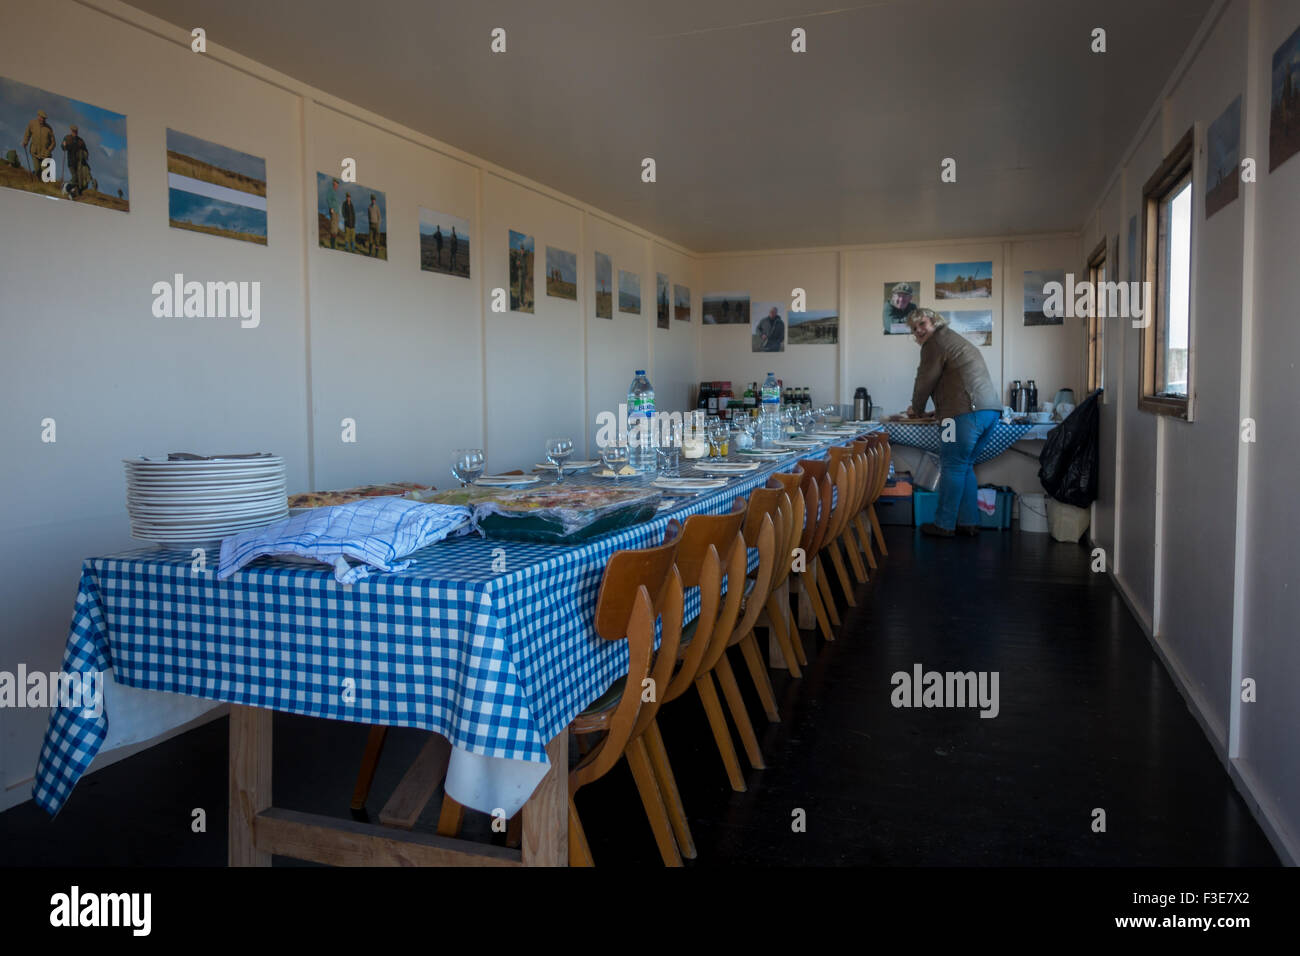 Inside the grouse shooters' hut on Burley Moor in Yorkshire, preparing for the post shoot feast - Stock Image